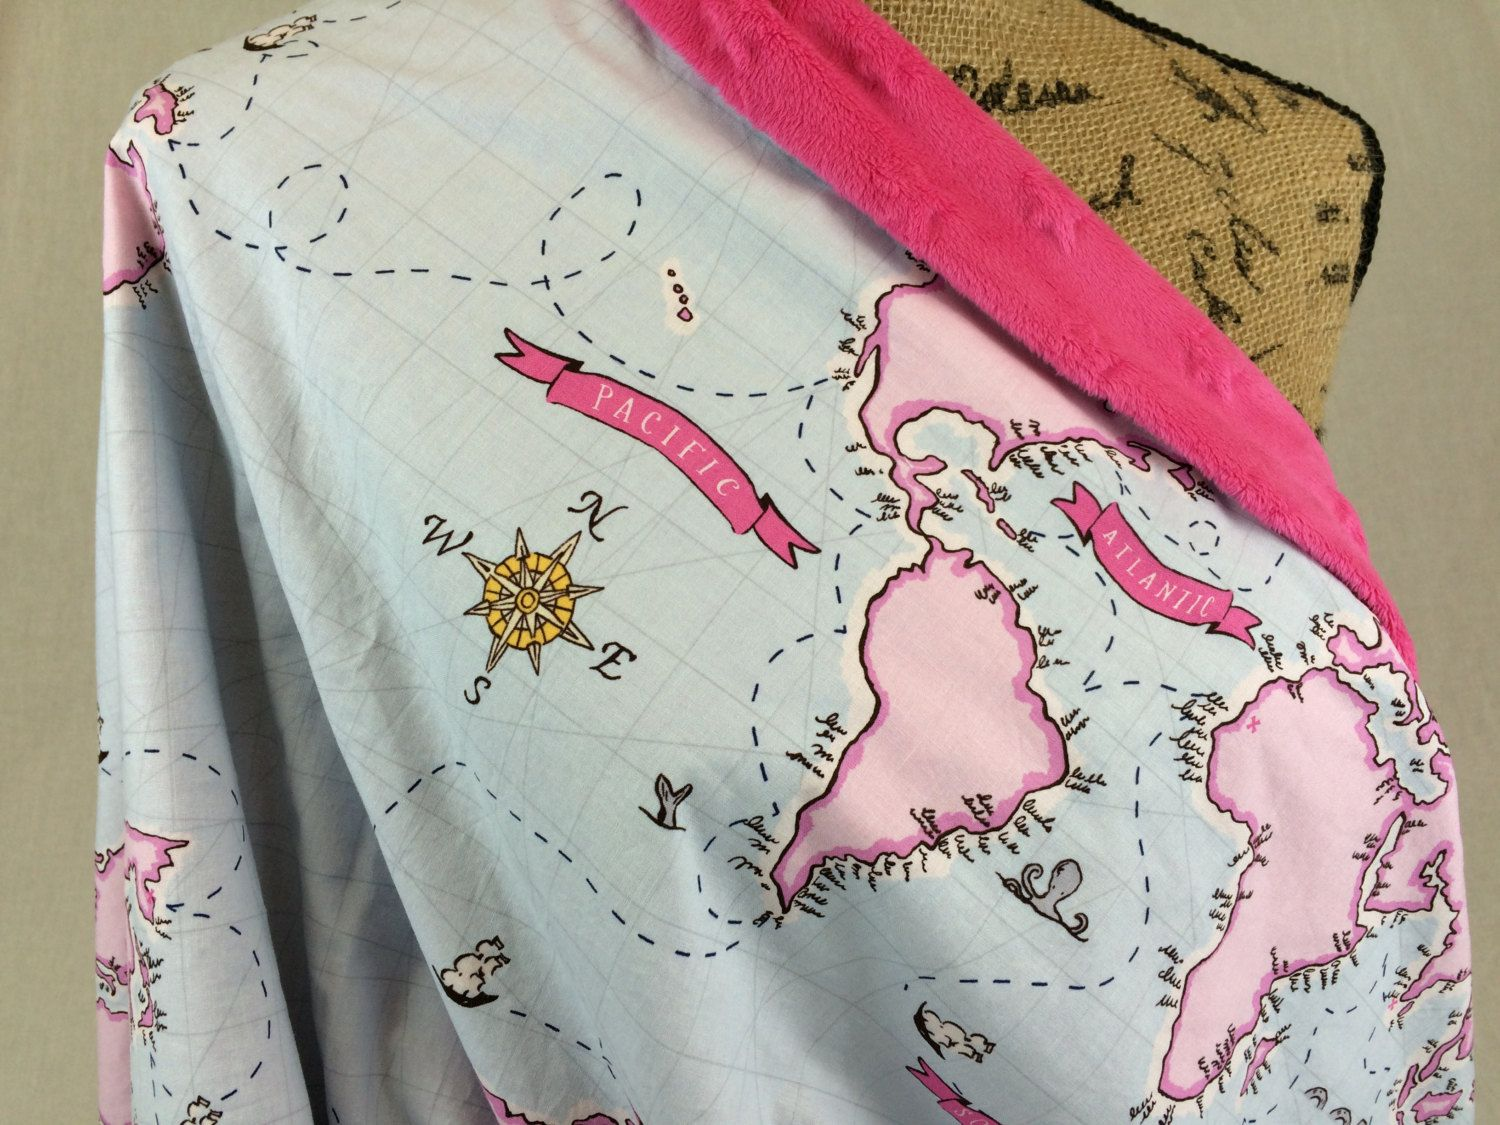 World map blanket throw blanket baby blanket lap blanket sky world map blanket throw blanket baby blanket lap blanket sky blue and pink world map with bright pink embossed star minky fleece blanket gumiabroncs Images